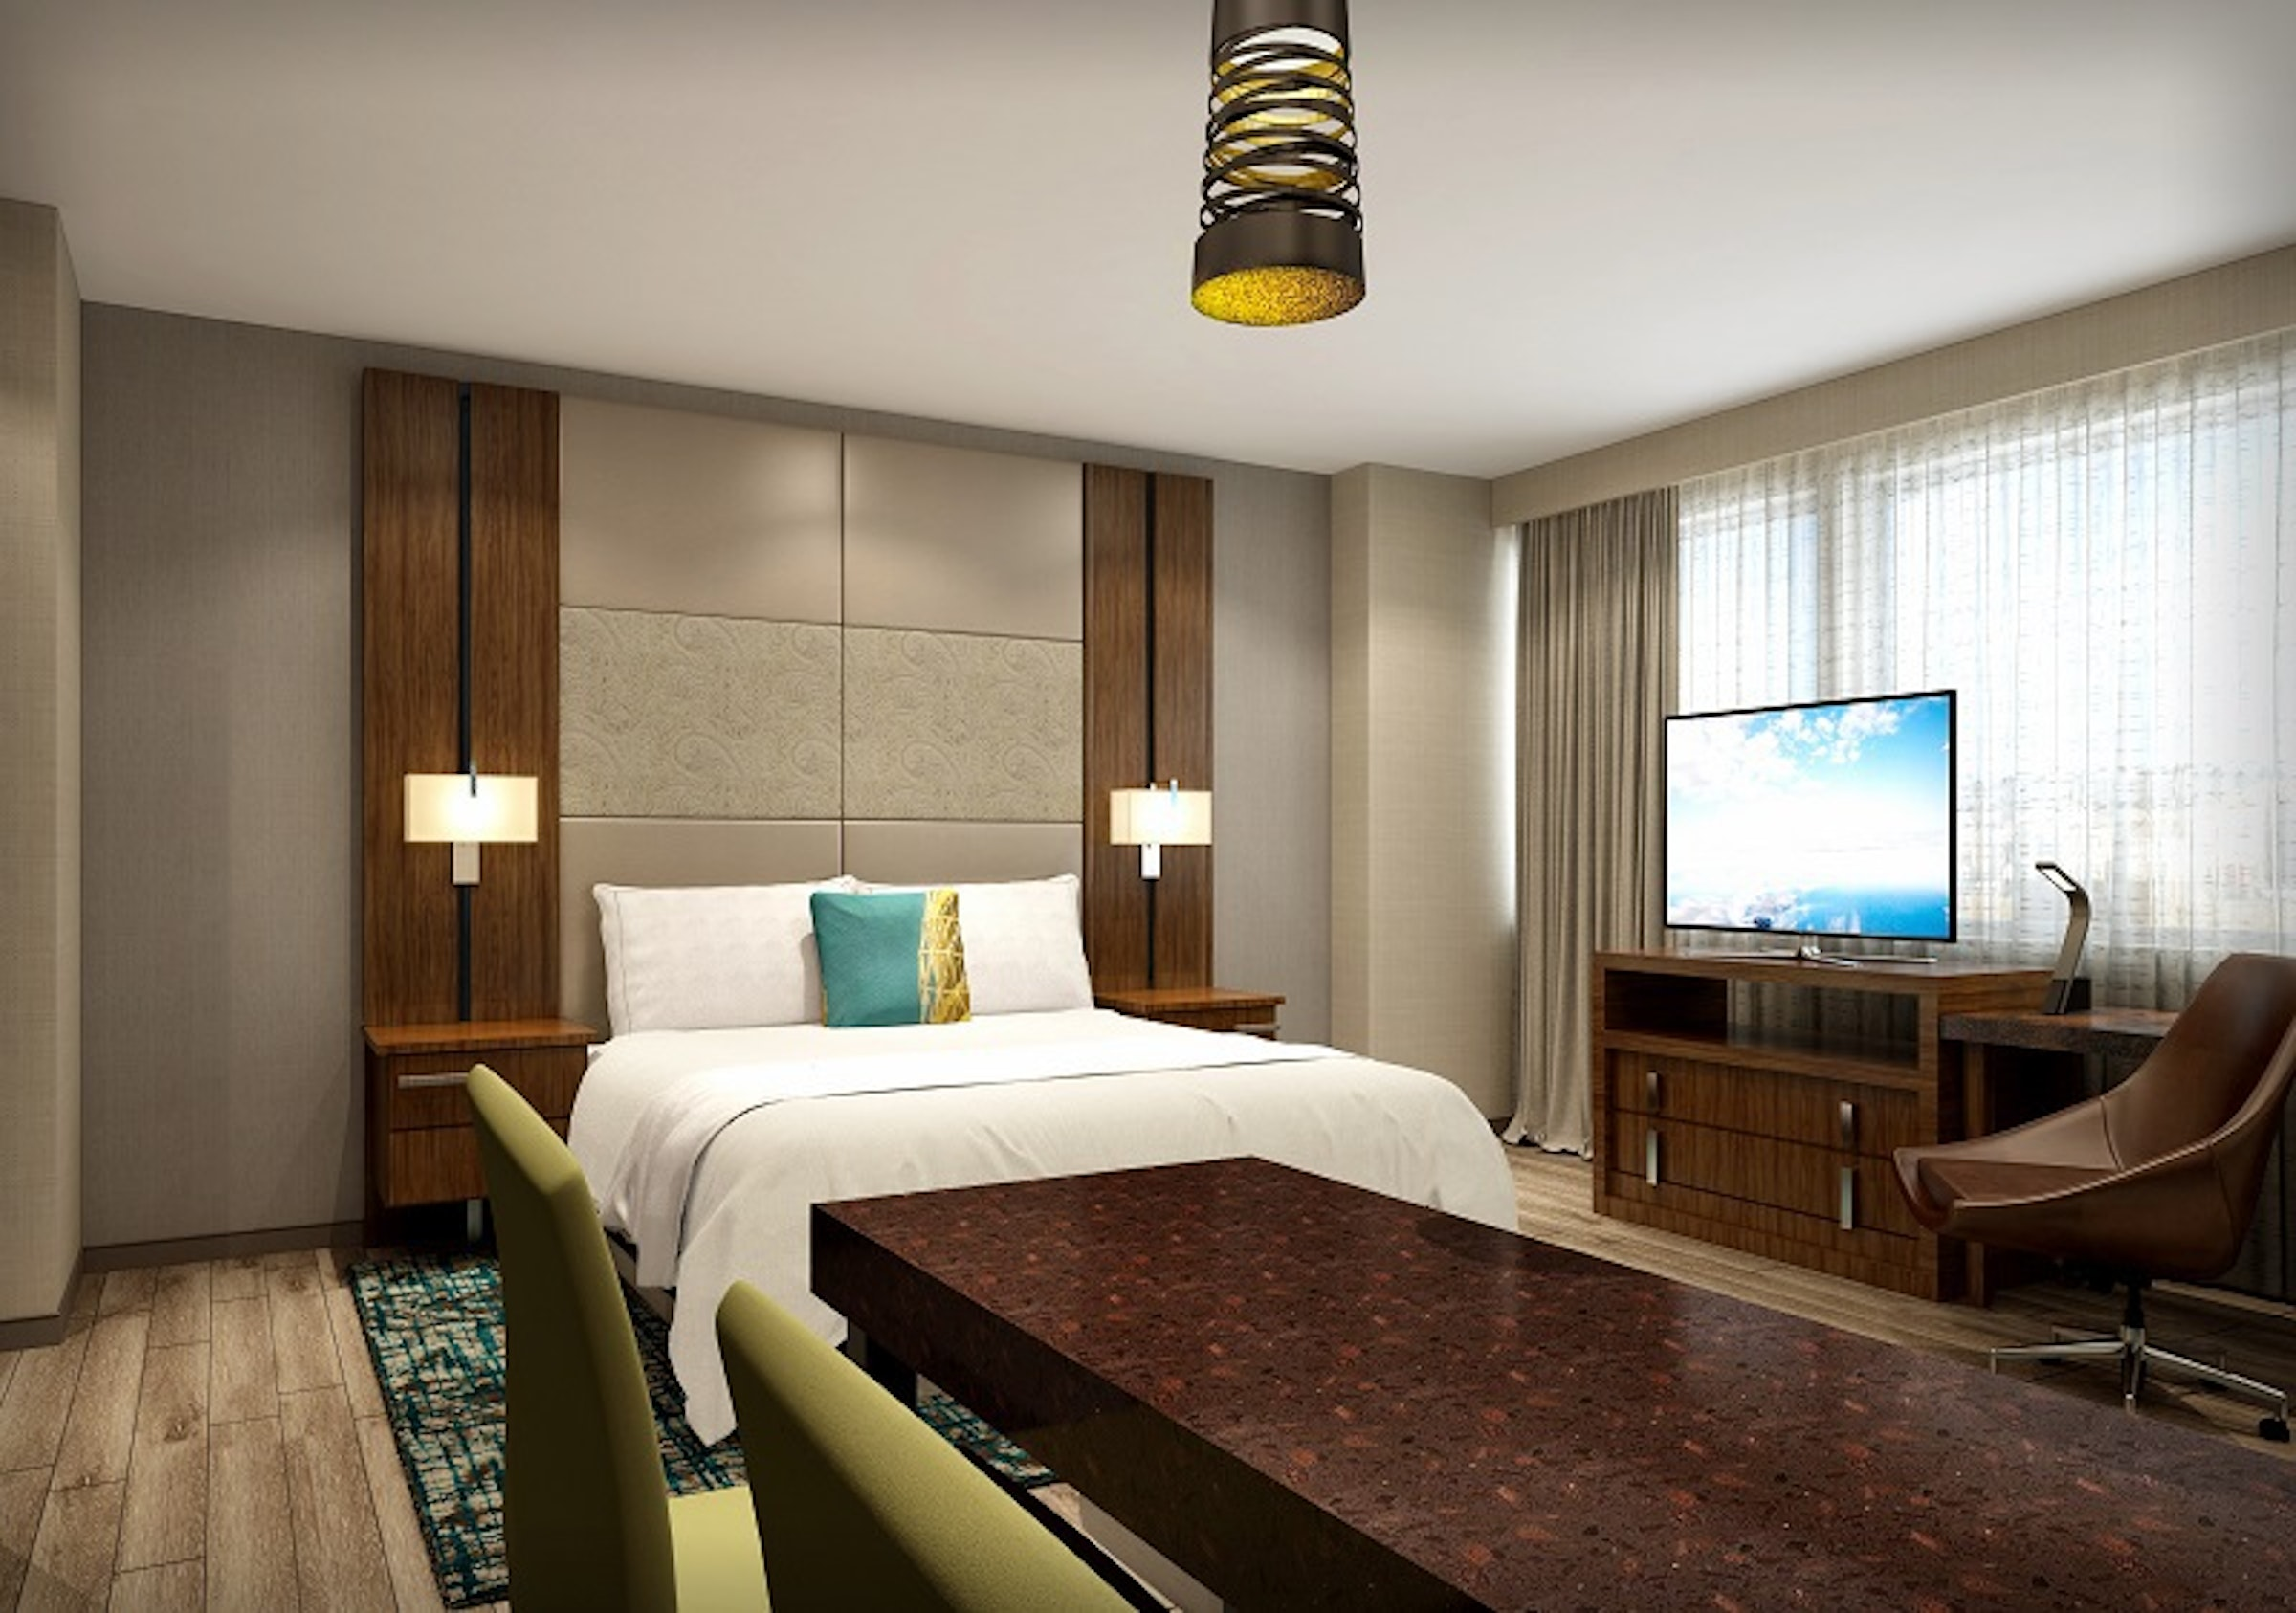 Residence Inn by Marriott Dallas Downtown in Beyond Dallas